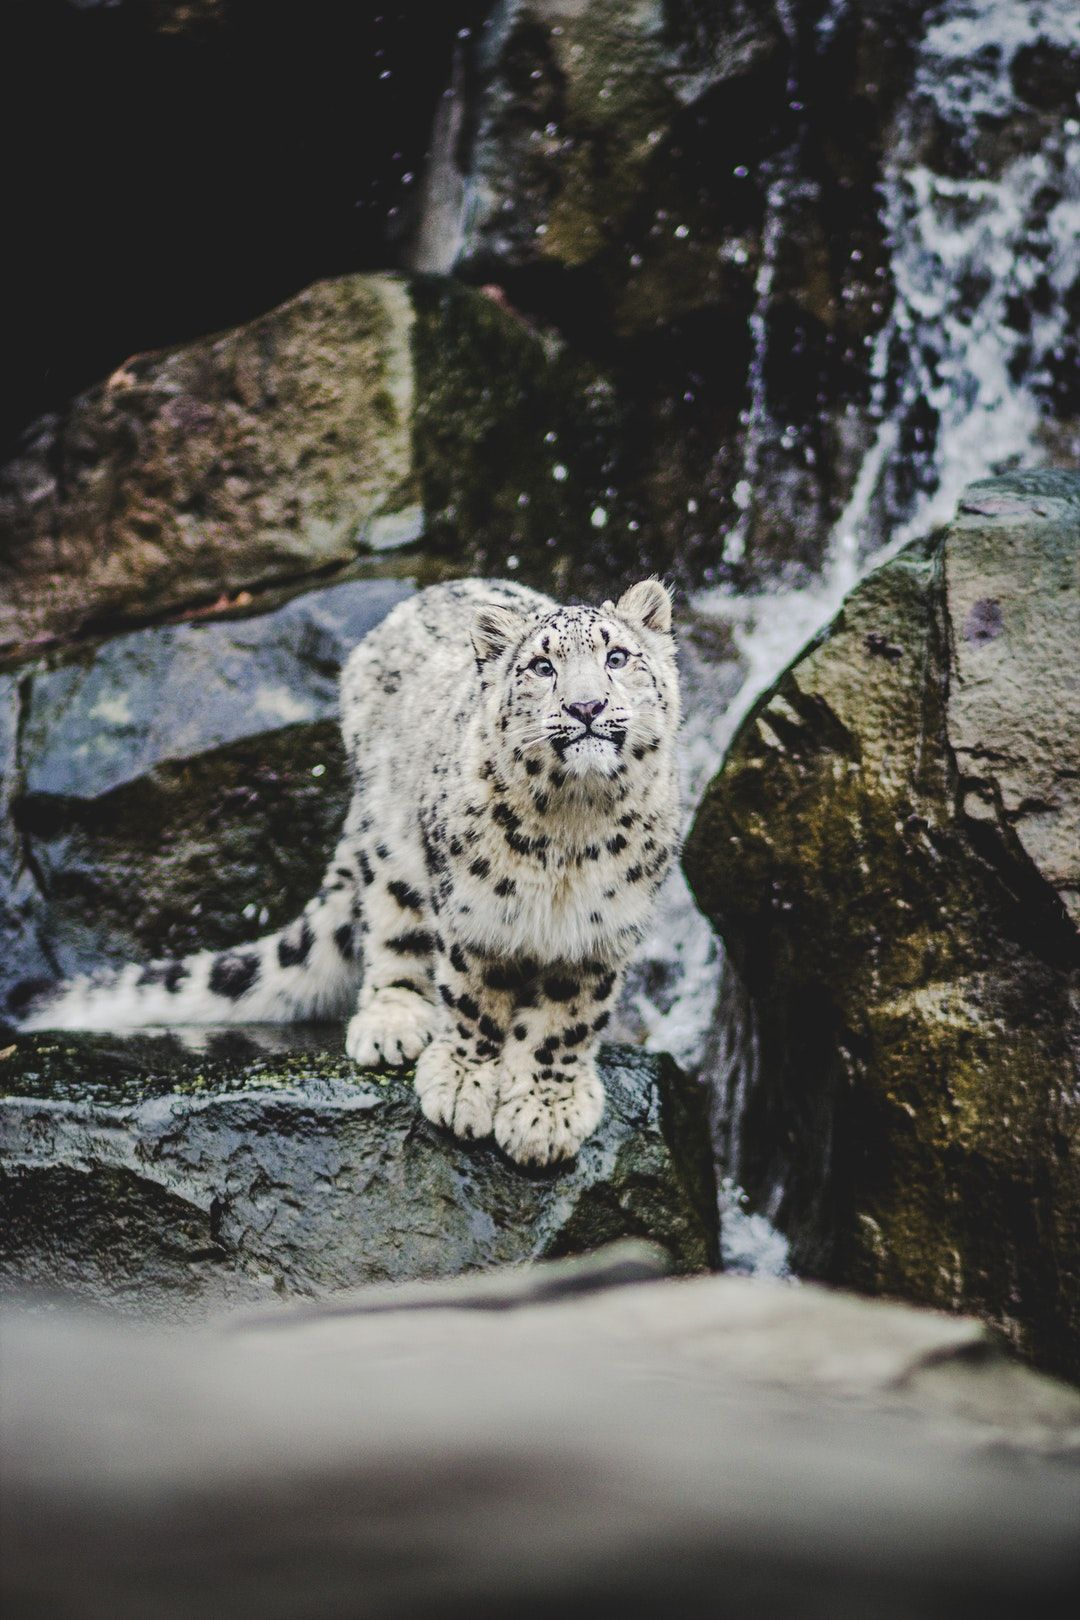 Hd Photo By Helena Lopes Wildlittlethingsphoto On Unsplash Leopard Pictures Snow Leopard Pictures Snow Leopard